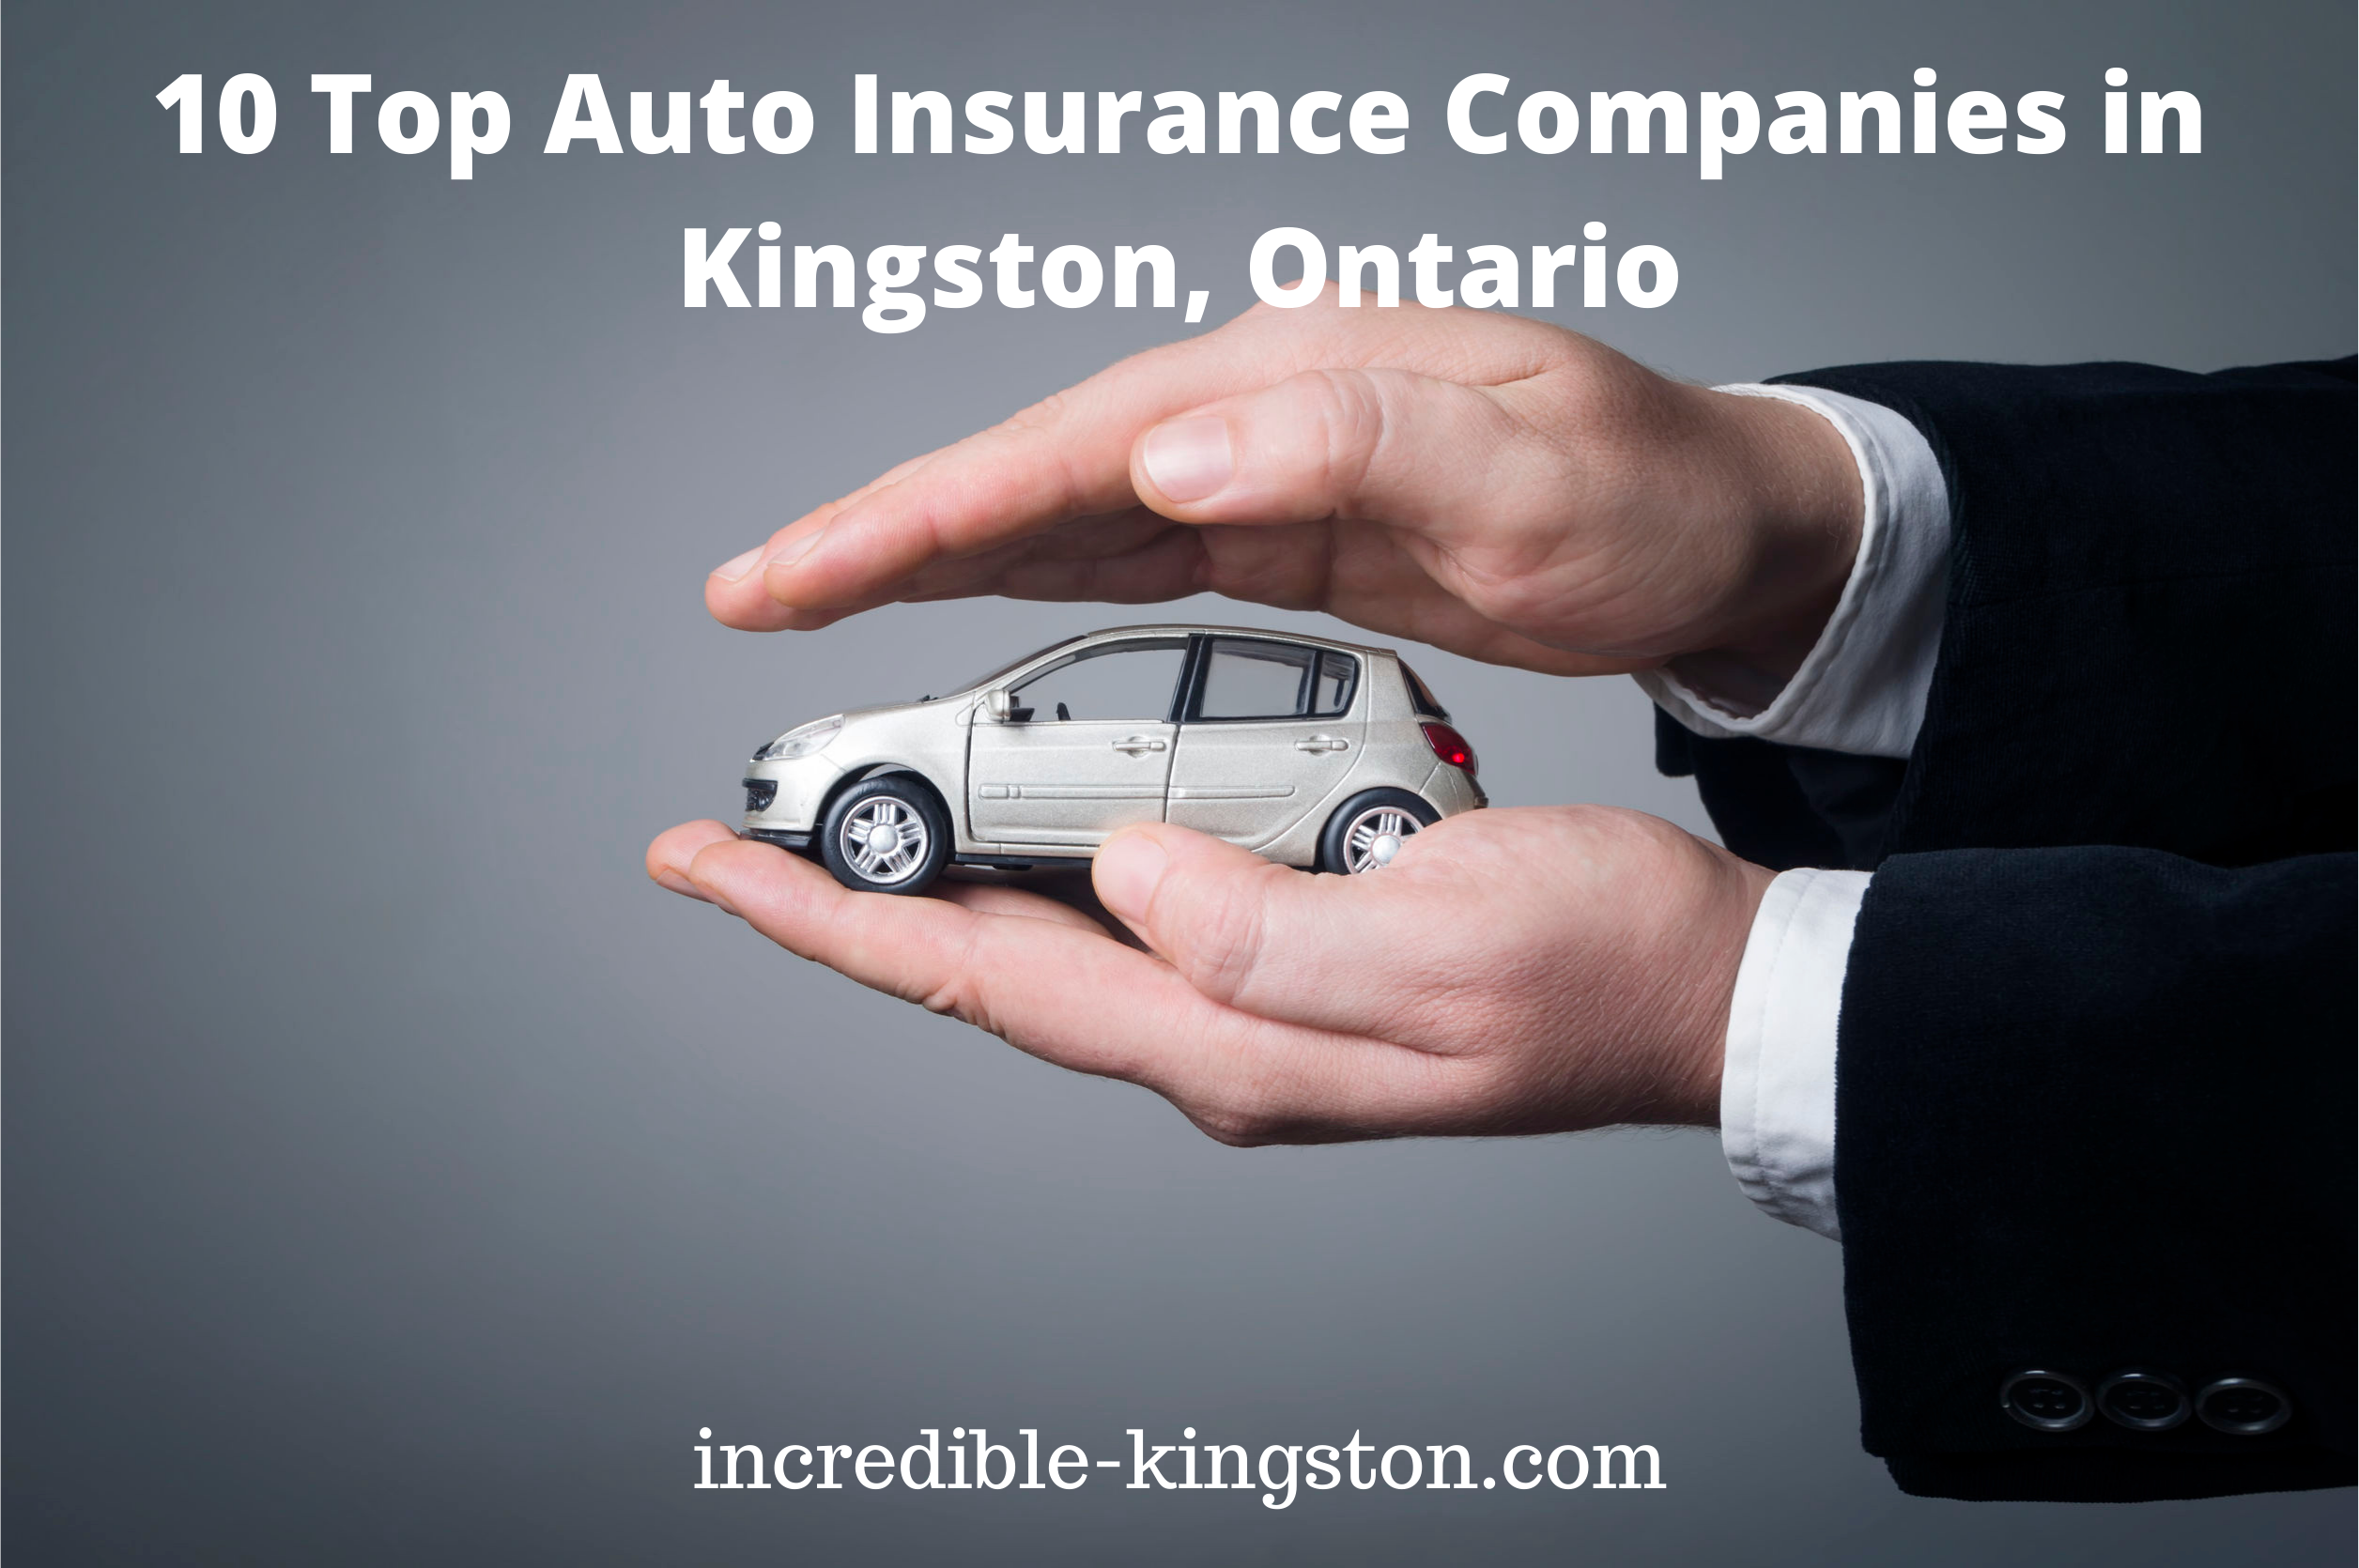 Auto Insurance Companies in Kingston, Ontario